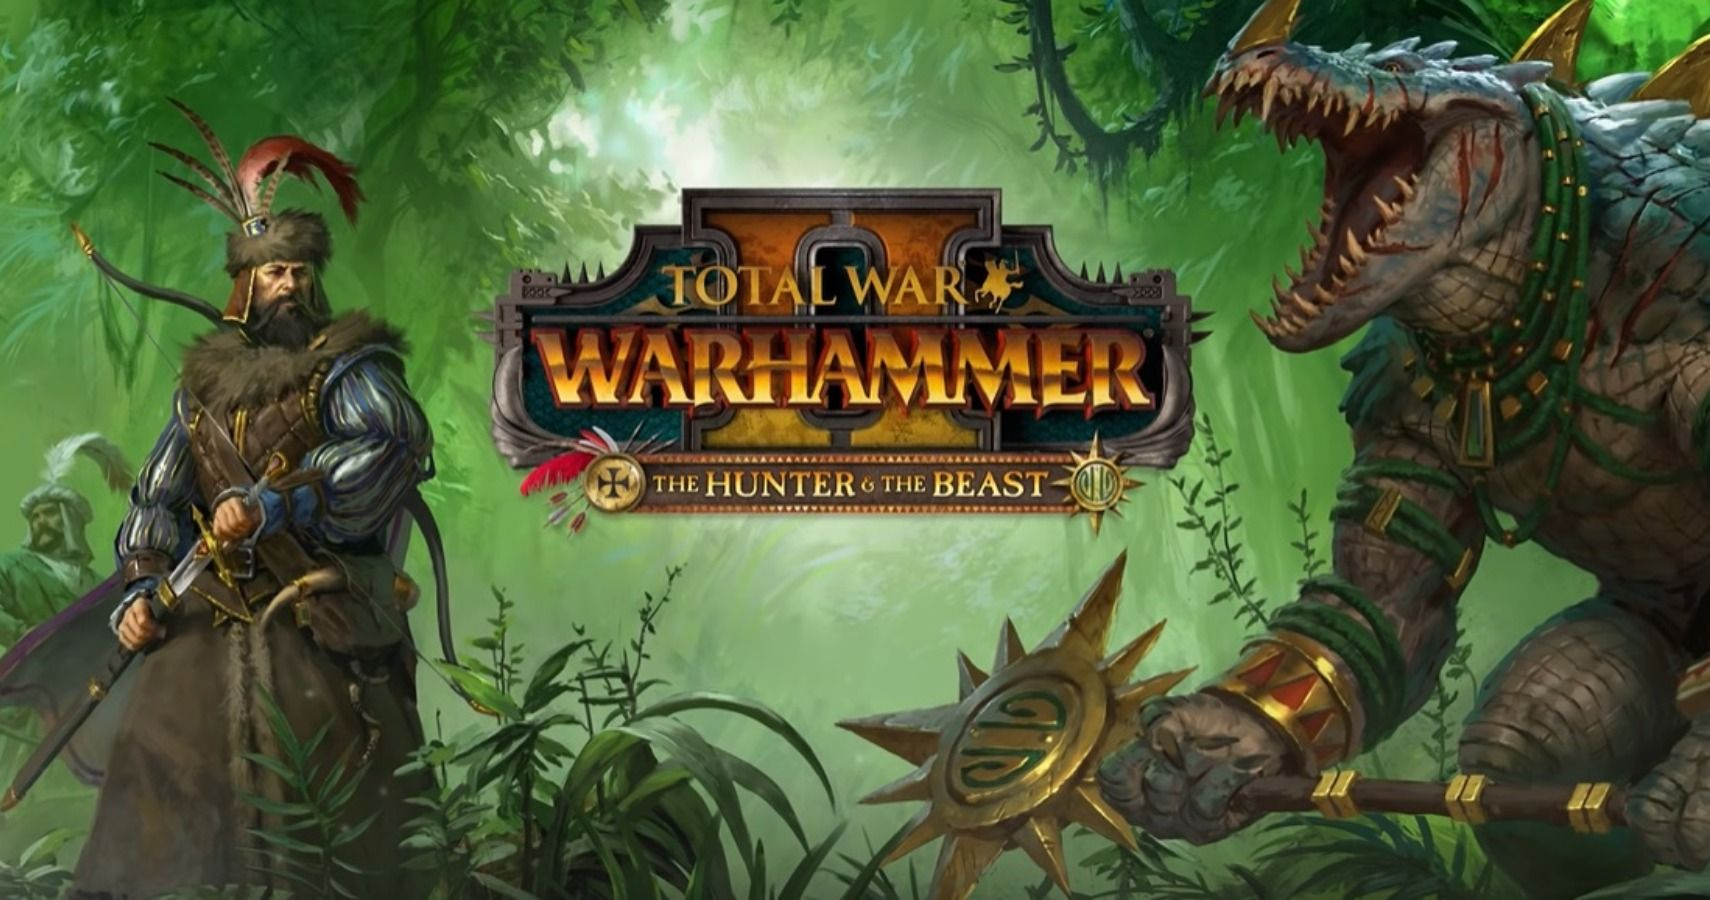 Total War Warhammer 2 The Hunter And The Beast Will Introduce New Lords Nakai the wanderer, sacred kroxigor of the first spawning is an albino kroxigor with unusually thick skin, even for a kroxigor. total war warhammer 2 the hunter and